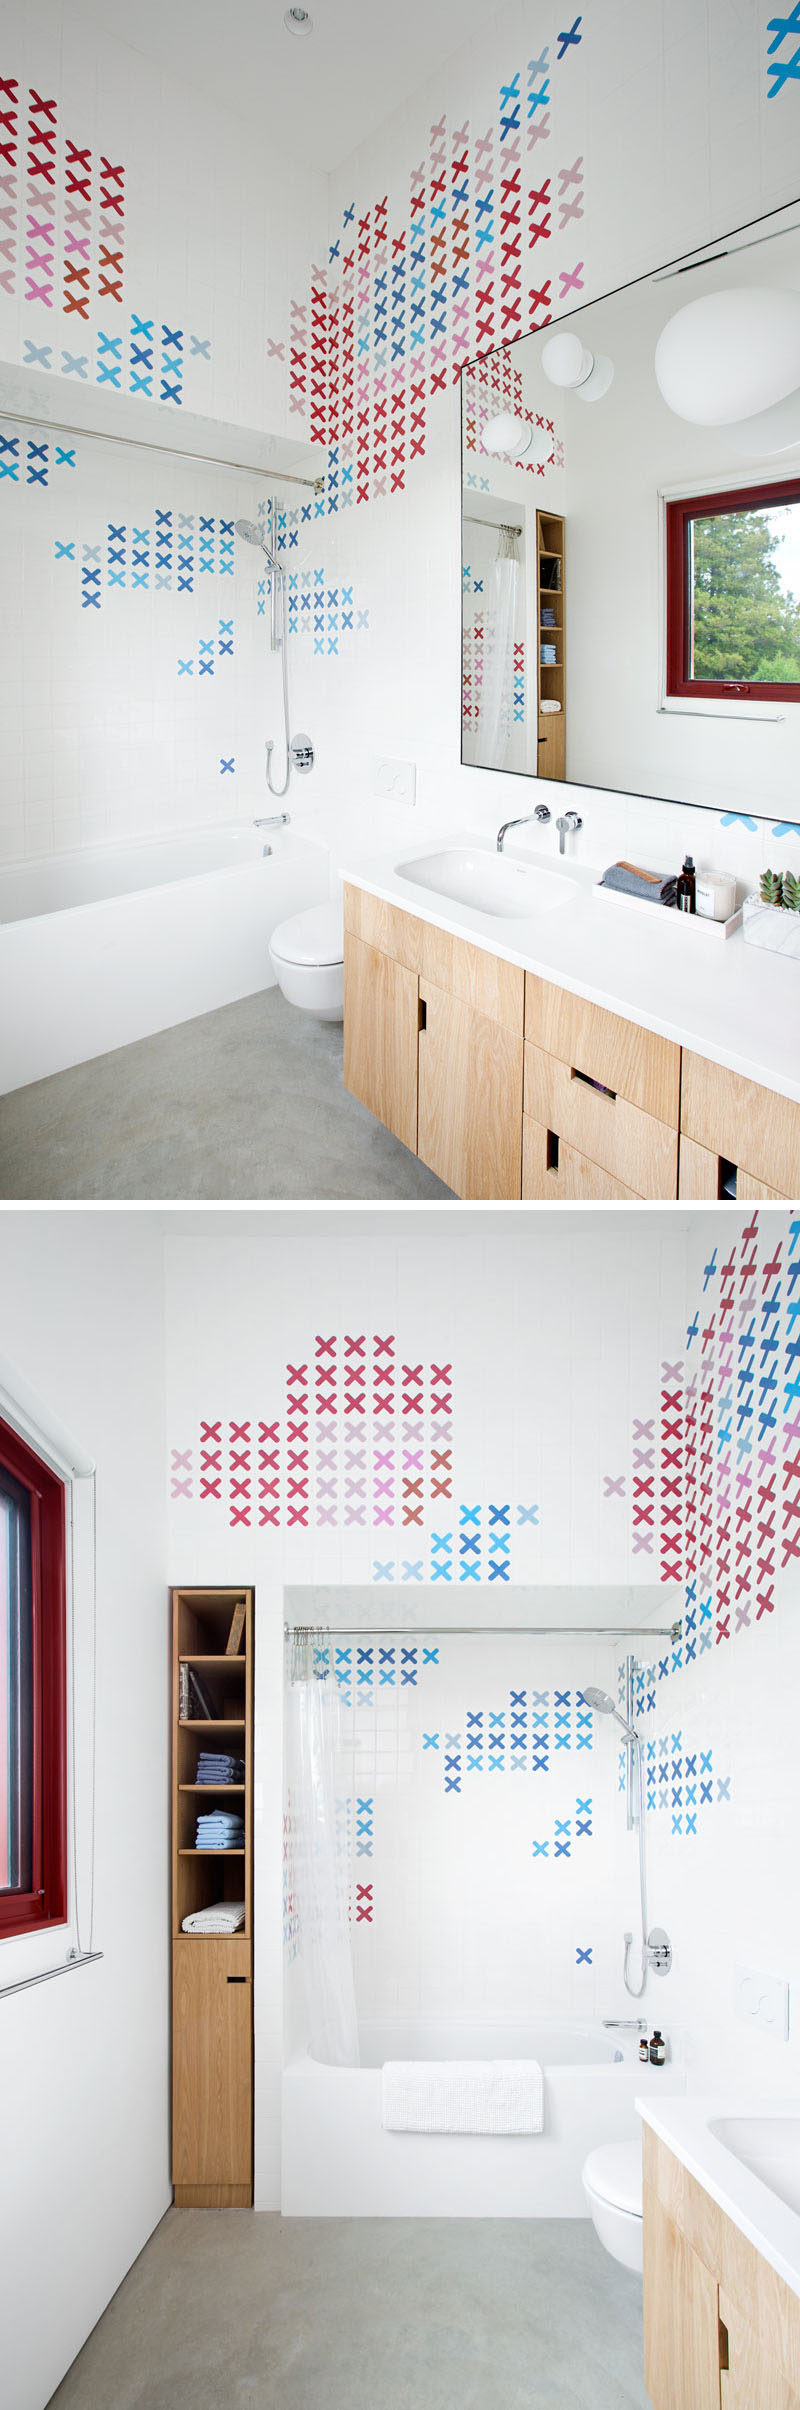 This modern bathroom is filled with colorful 'X' tiles that almost look like a cross-stitch embroidery pattern.